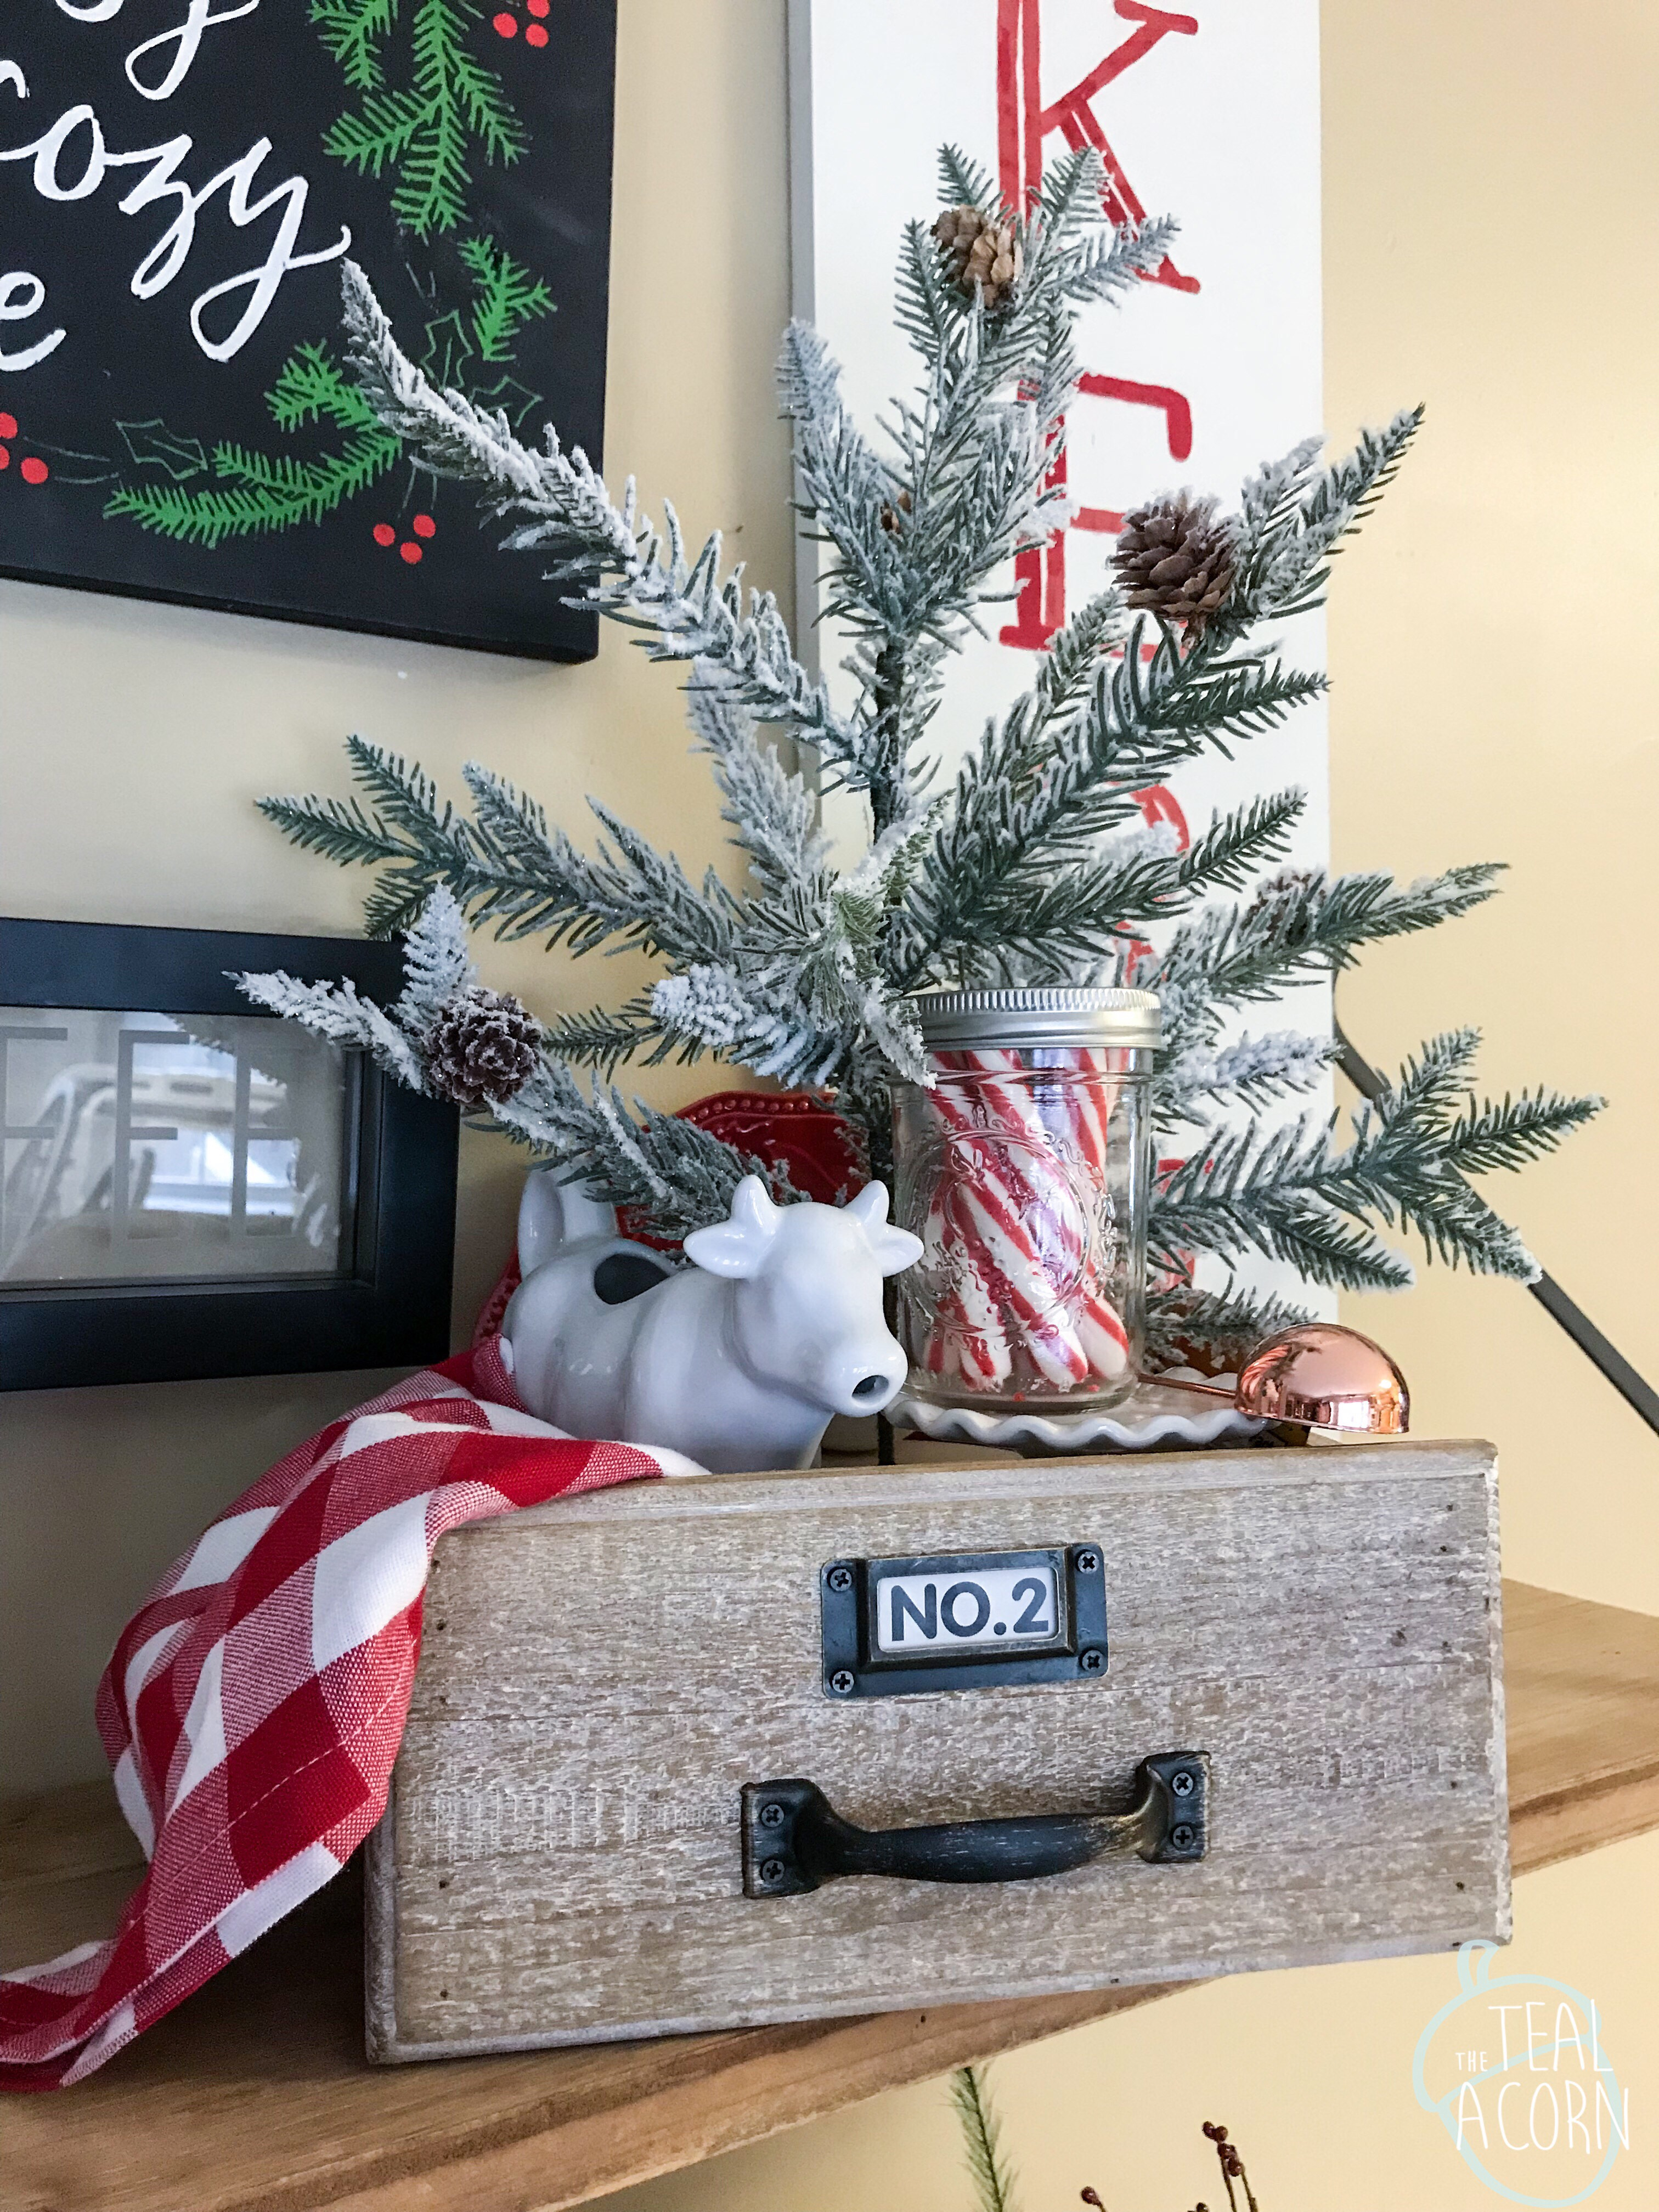 Small Christmas Coffee vignette with red and white buffalo check plaid napkin, cow creamer, peppermint sticks, and evergreen tree inside a drawer.